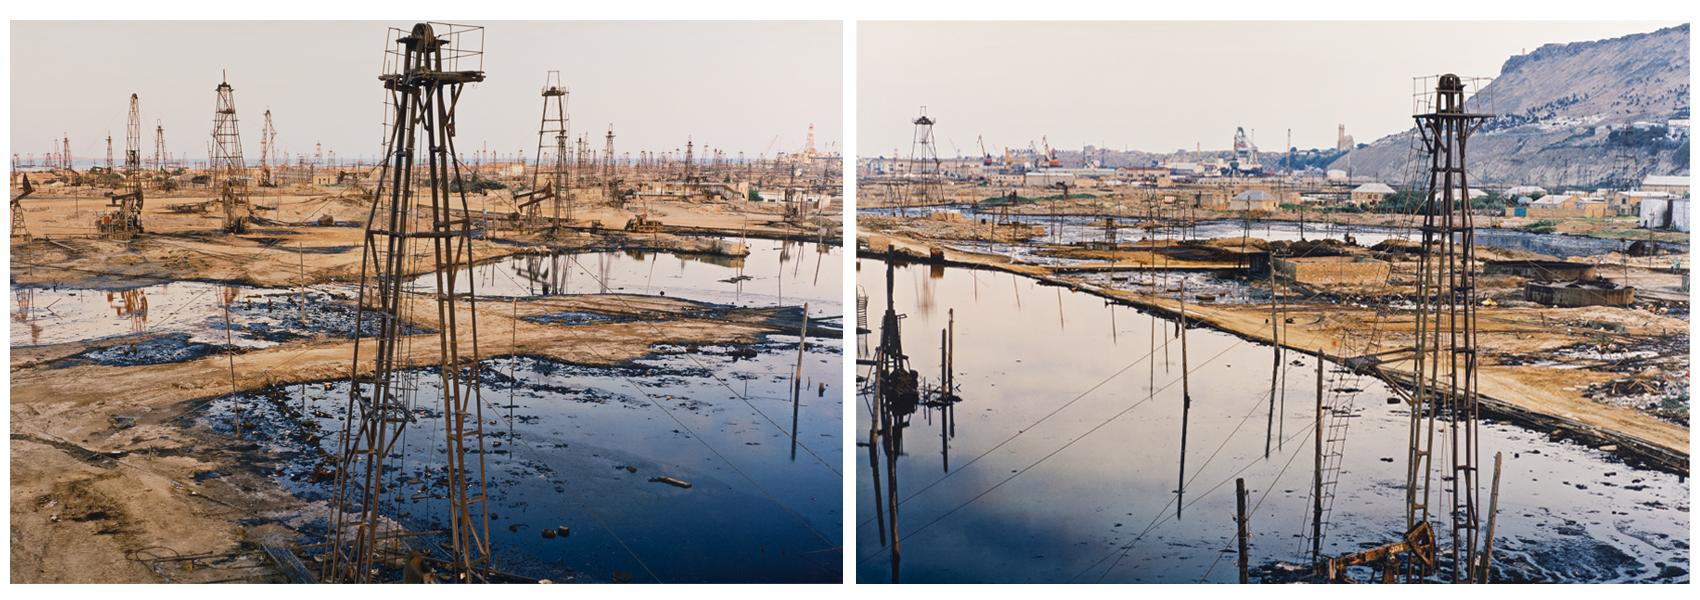 Edward Burtynsky Canadian, b. 1955 SOCAR Oil Field #1 a&b, Baku Azerbaijan, 2006 Digital chromogenic color print 40 x 120 in 101.6 x 304.8 cm 2009.31  Museum purchase with funds from Mrs. Martha W. Smith by exchange Collection of the Haggerty Museum of Art, Marquette University